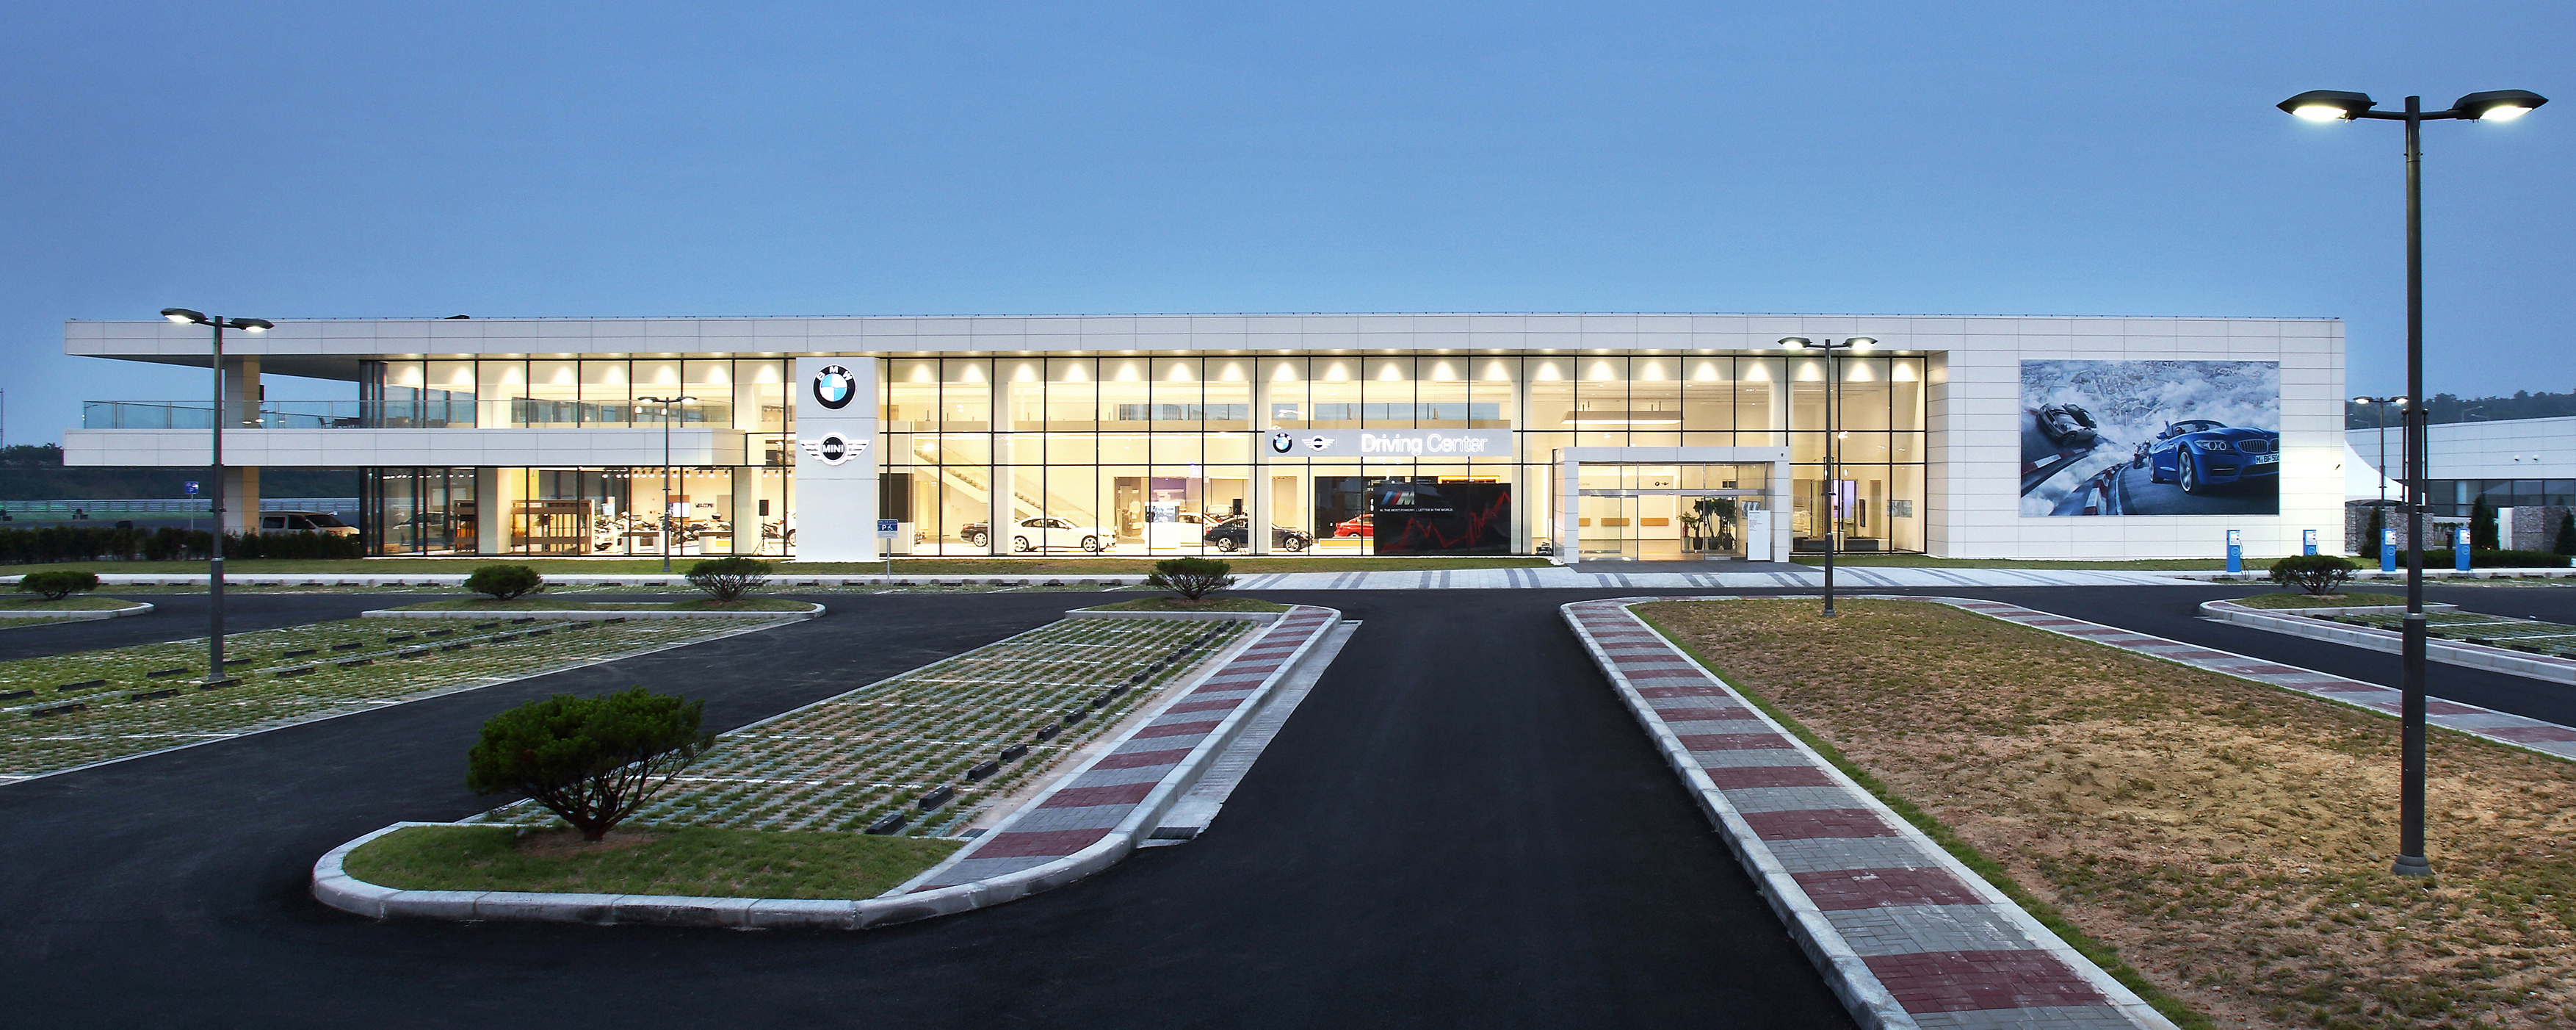 BMW Store Environments from Outside